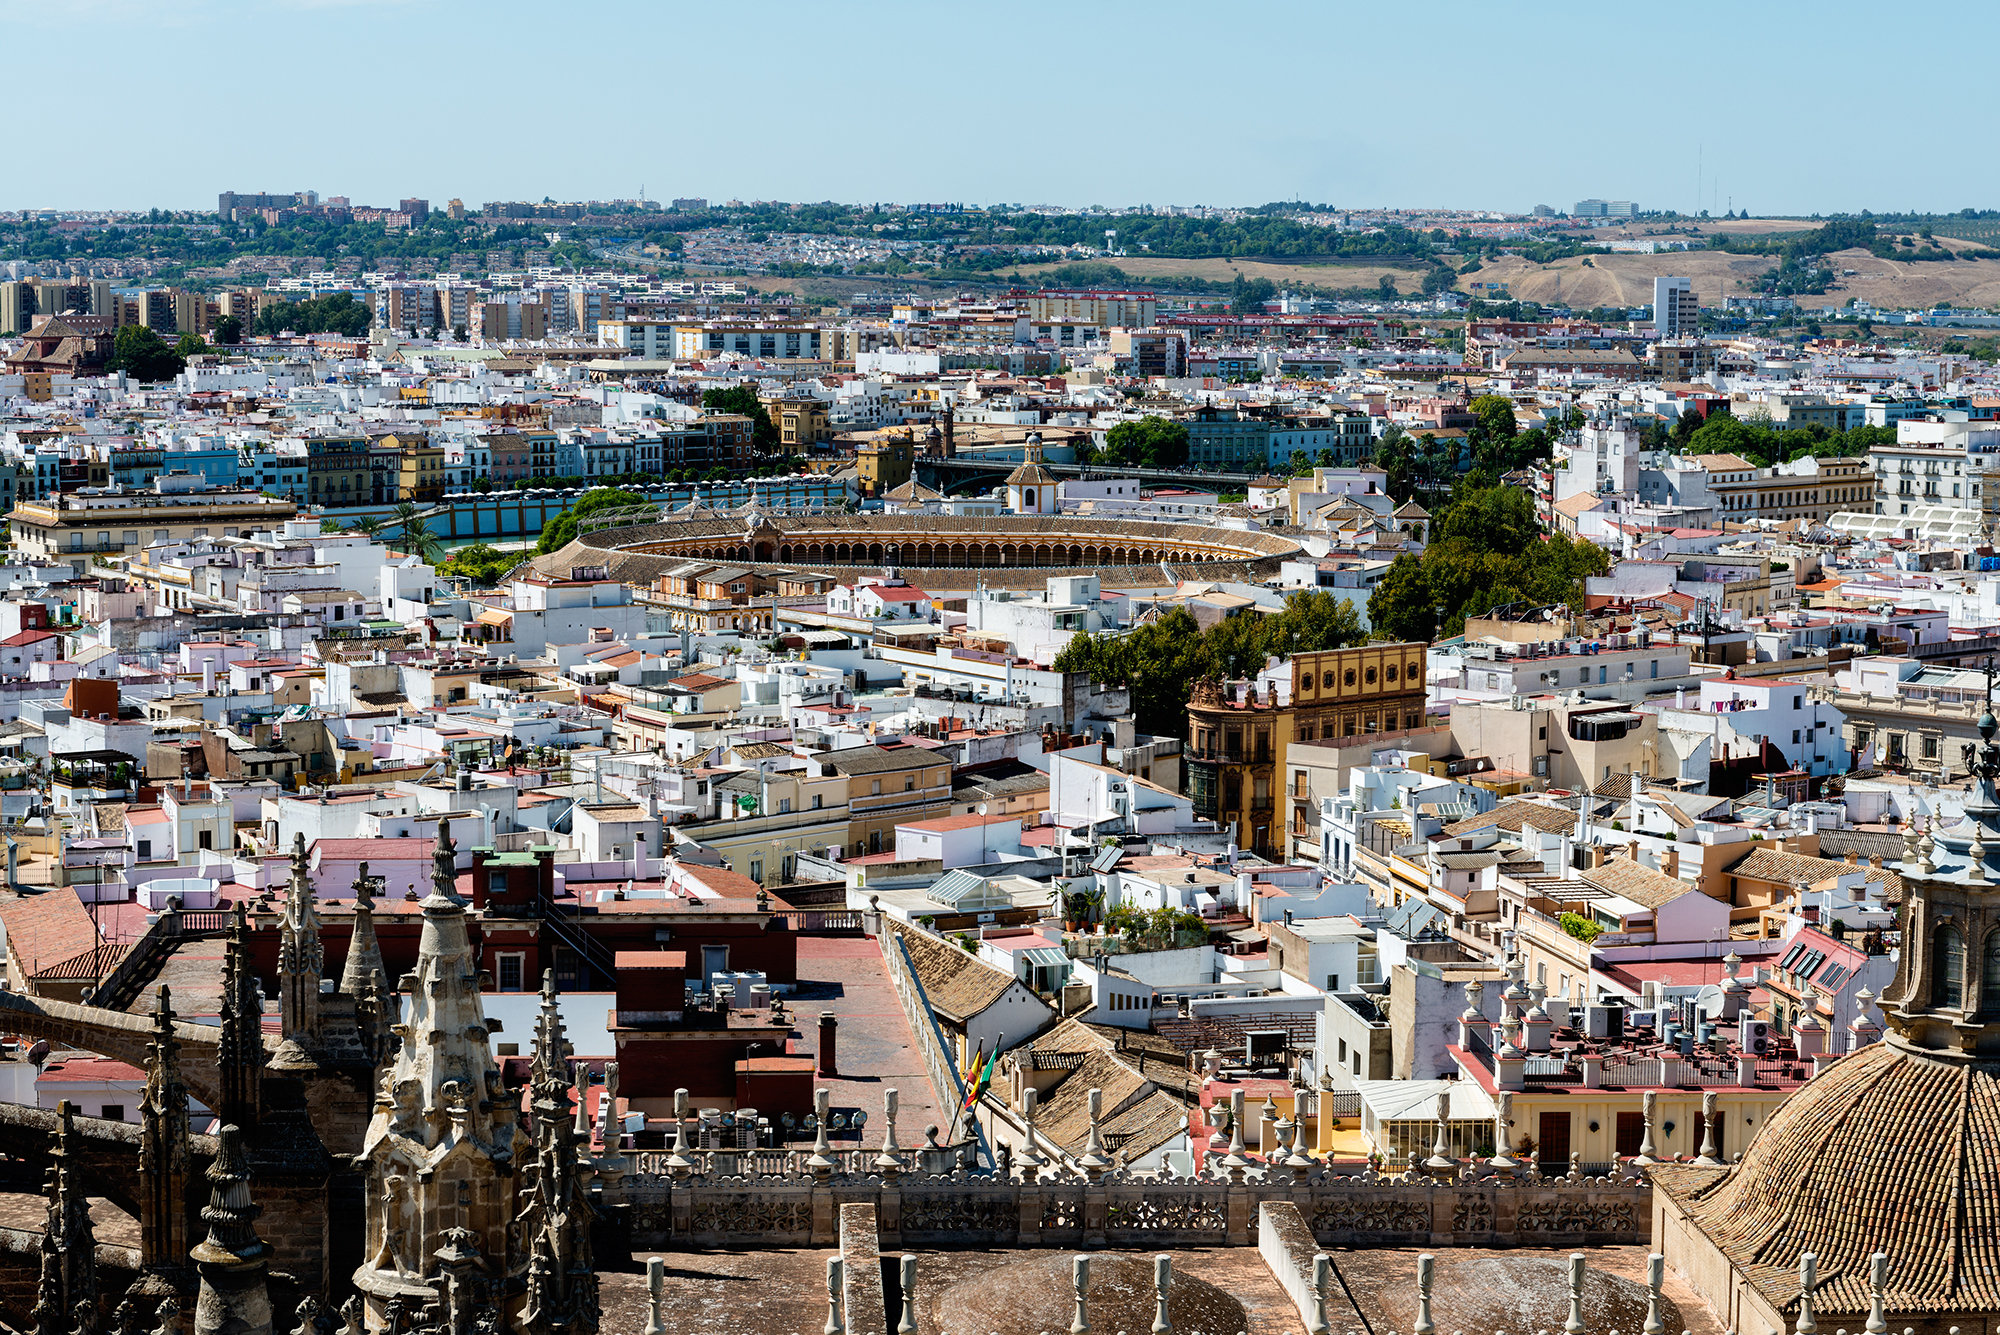 Rooftops of Seville in Spain on a sunny day